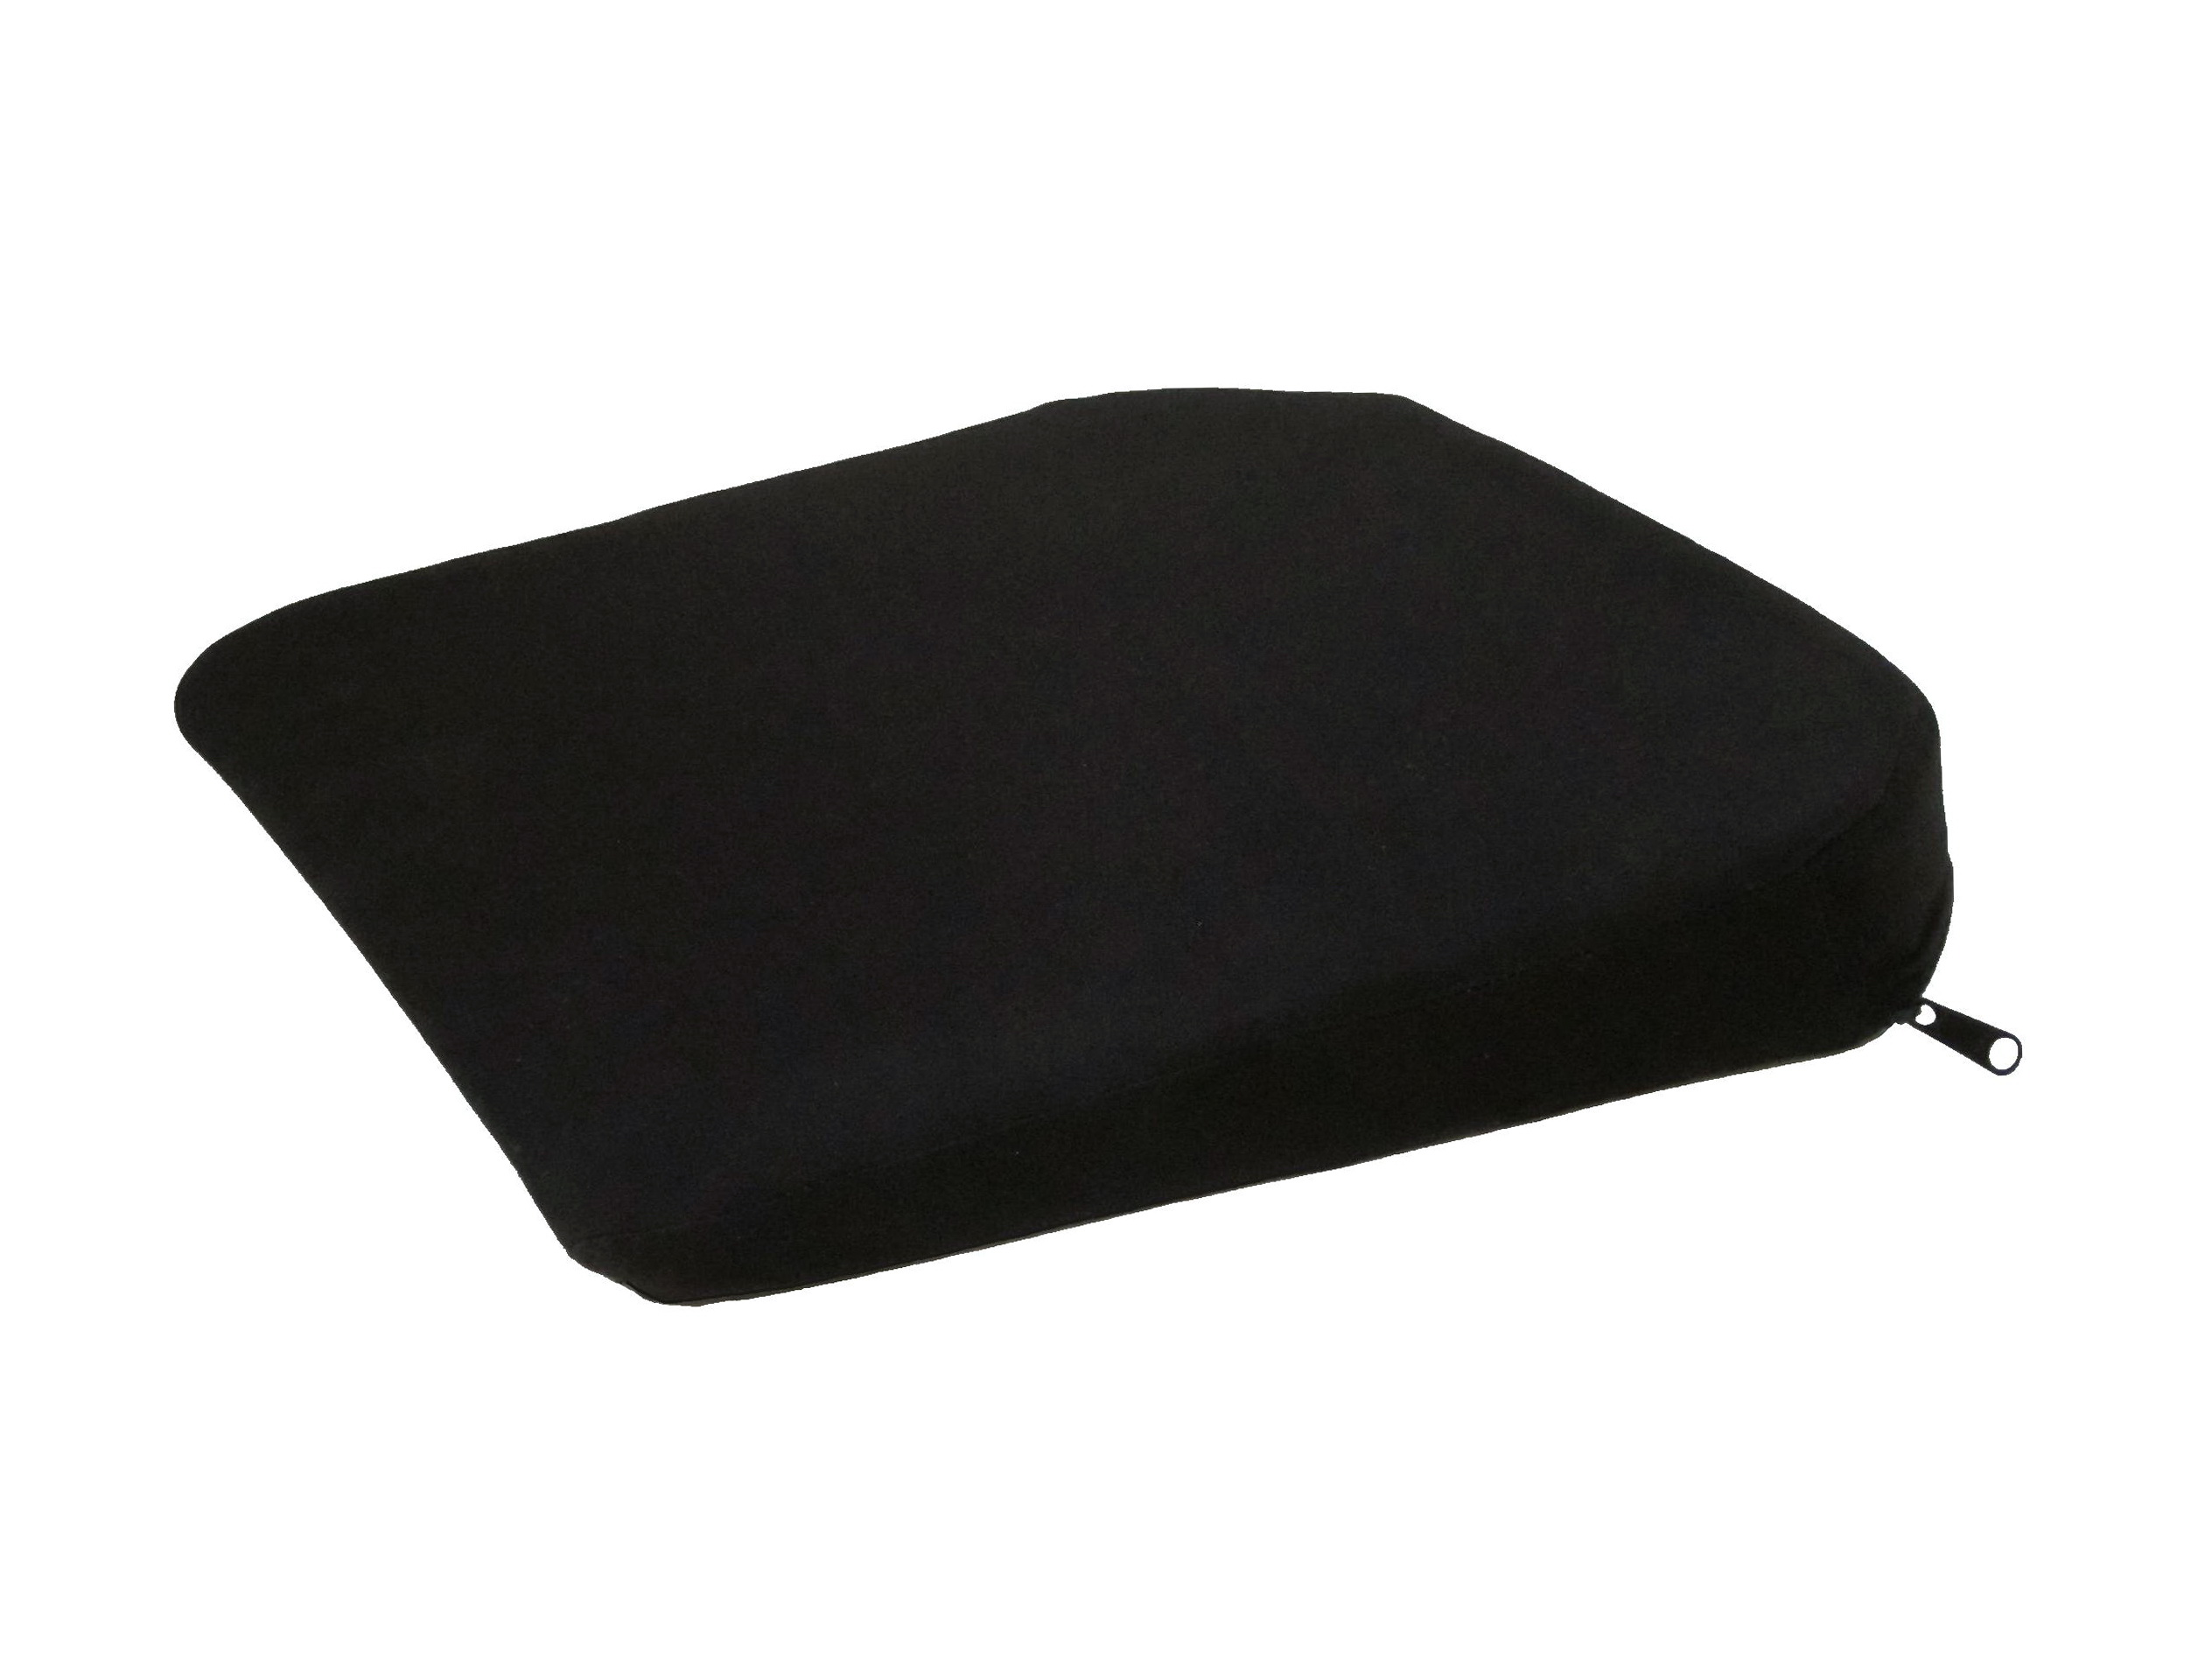 best car seat cushion for sciatica home design ideas. Black Bedroom Furniture Sets. Home Design Ideas